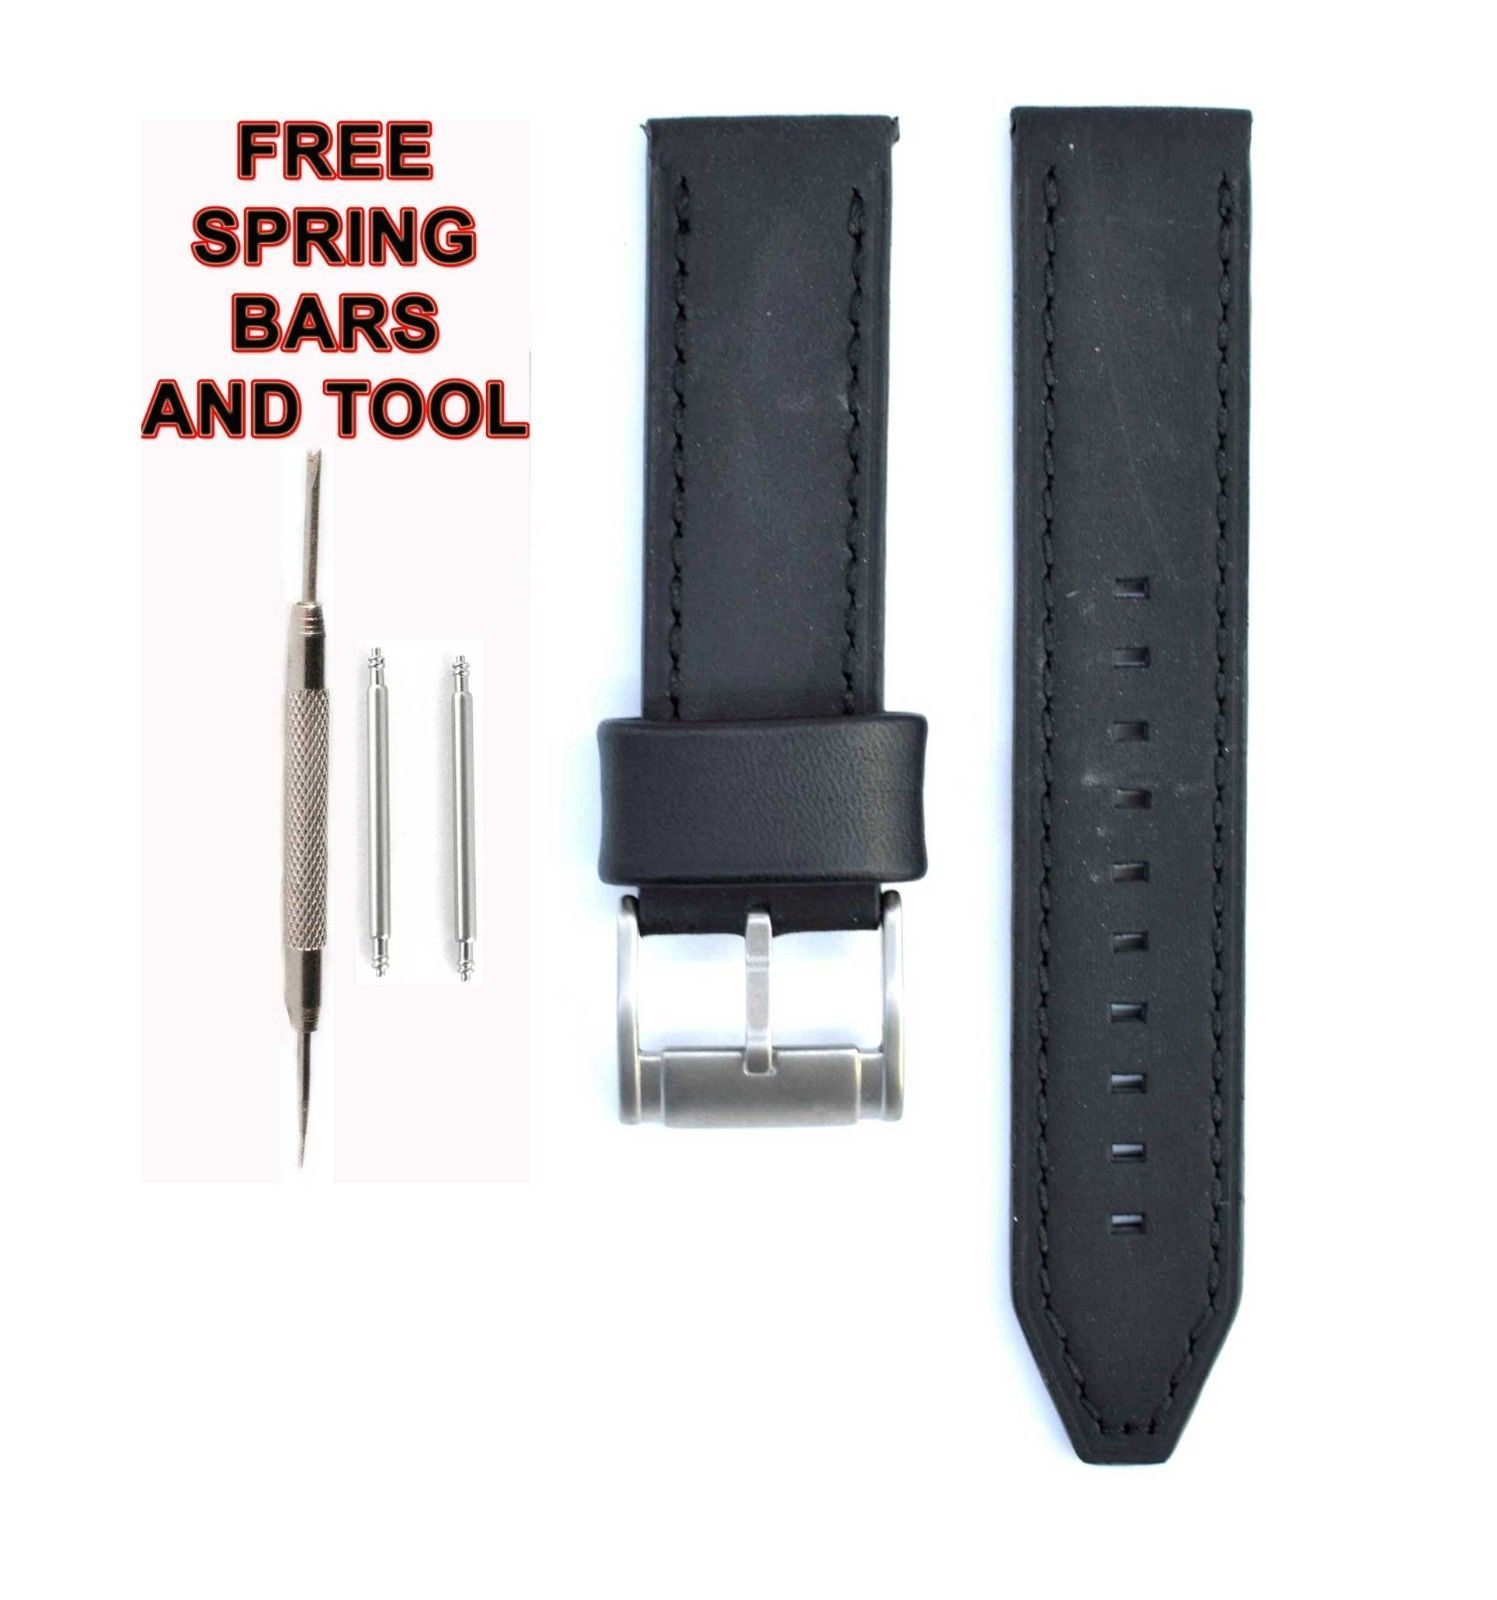 Fossil ME3056 22mm Black Leather Watch Strap Band FSL107 - $28.71